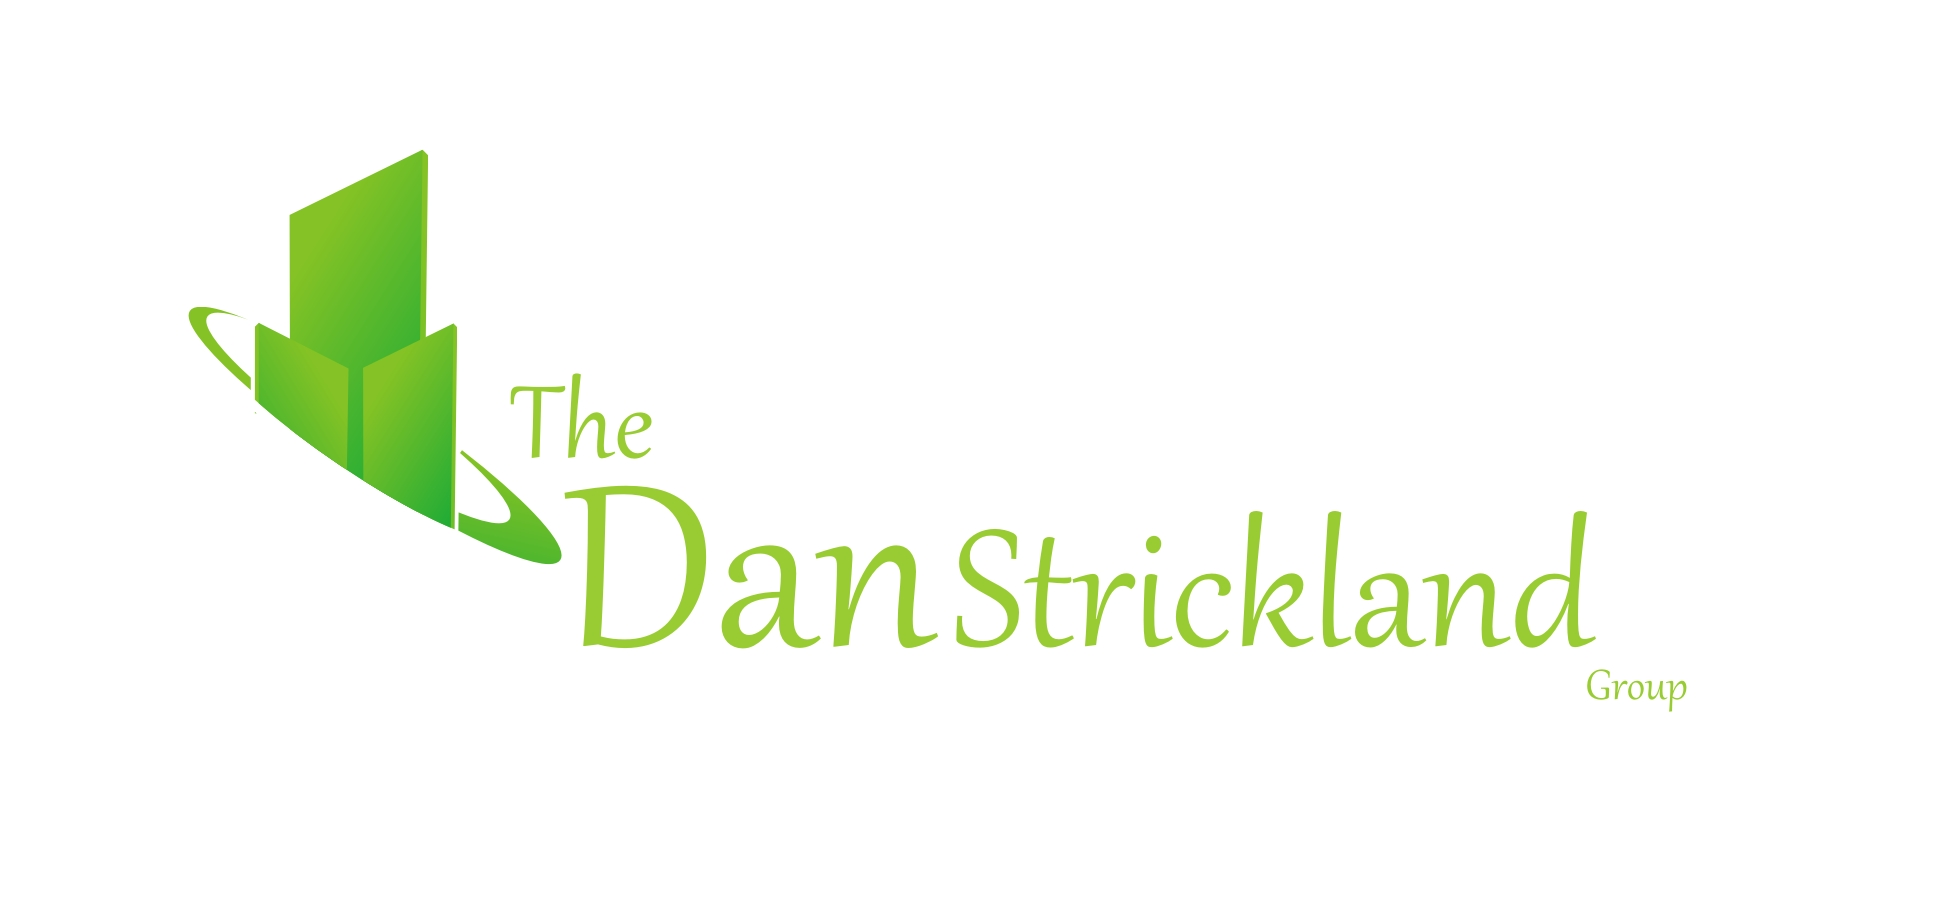 Logo Design by Choirul Jcd - Entry No. 155 in the Logo Design Contest Creative Logo Design for The Dan Strickland Group.